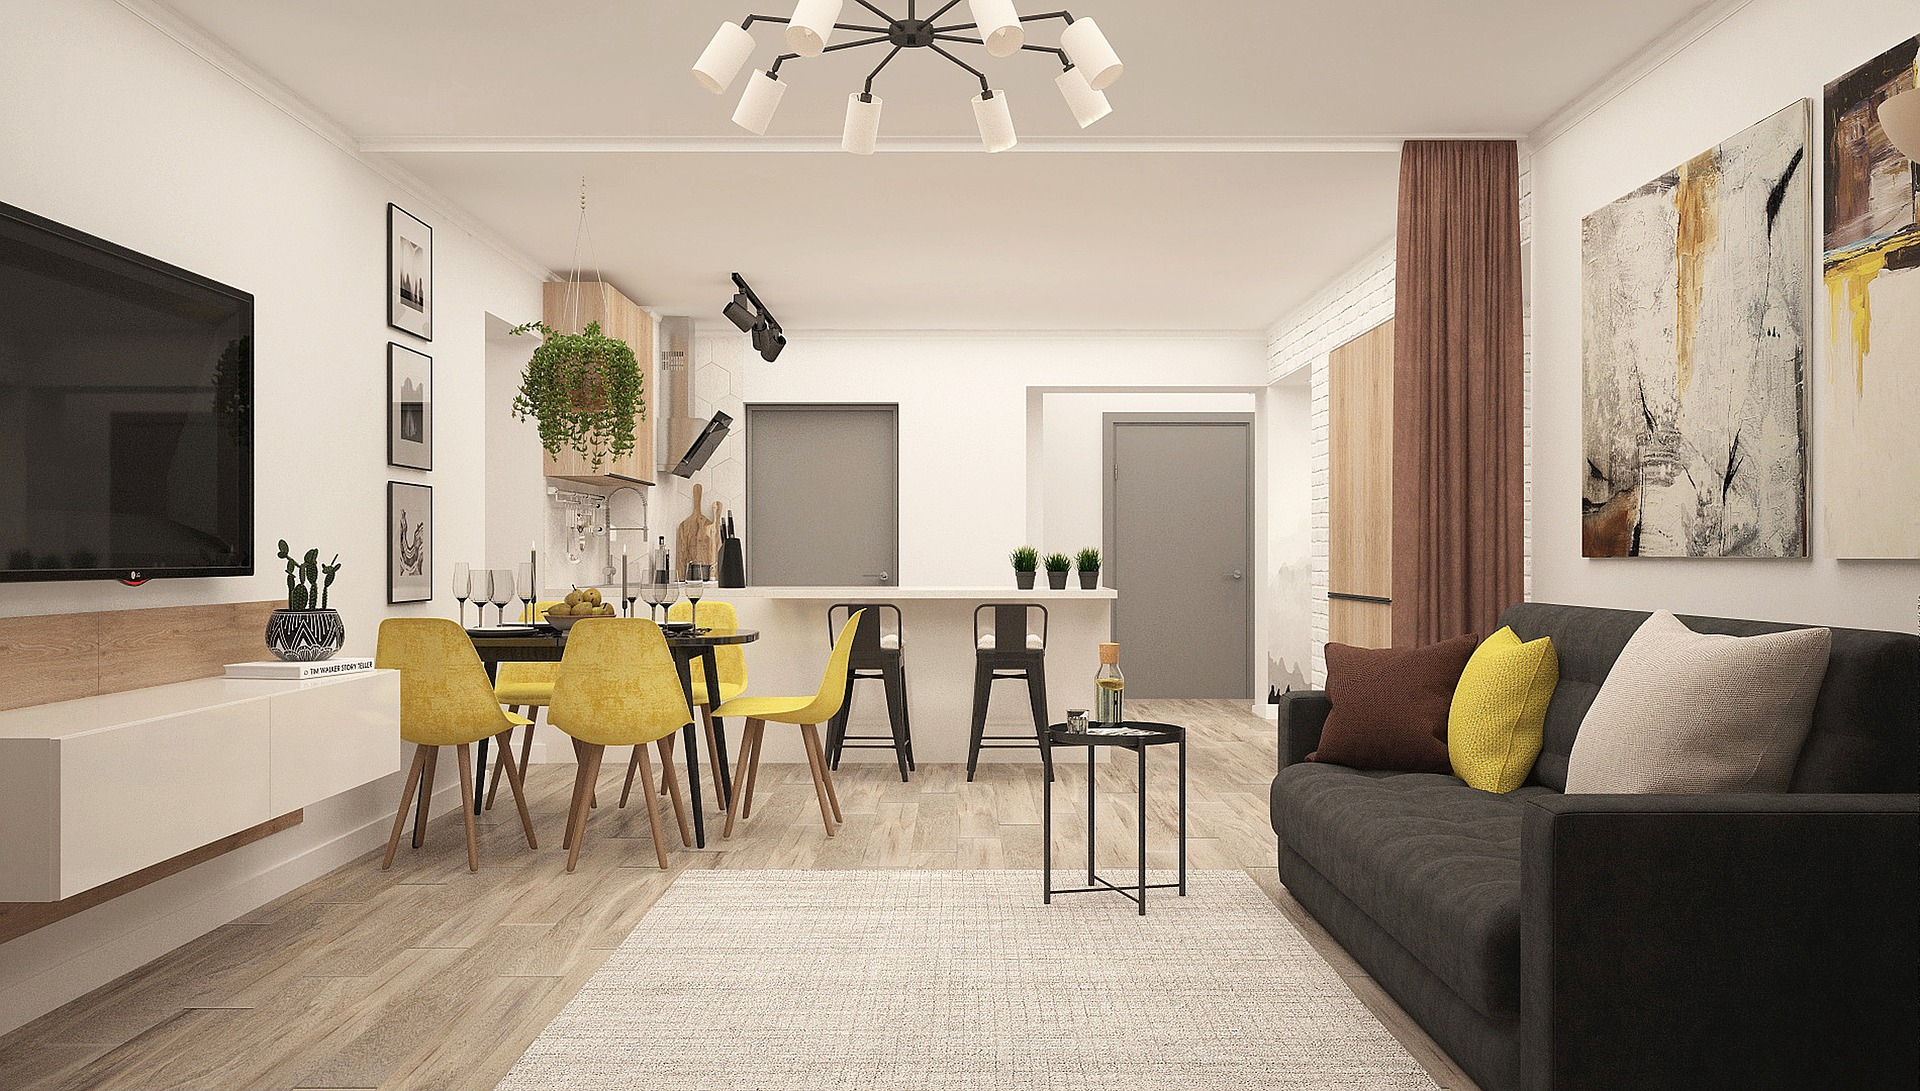 How to Create Dynamic Interior Spaces with Transformable Interior Design